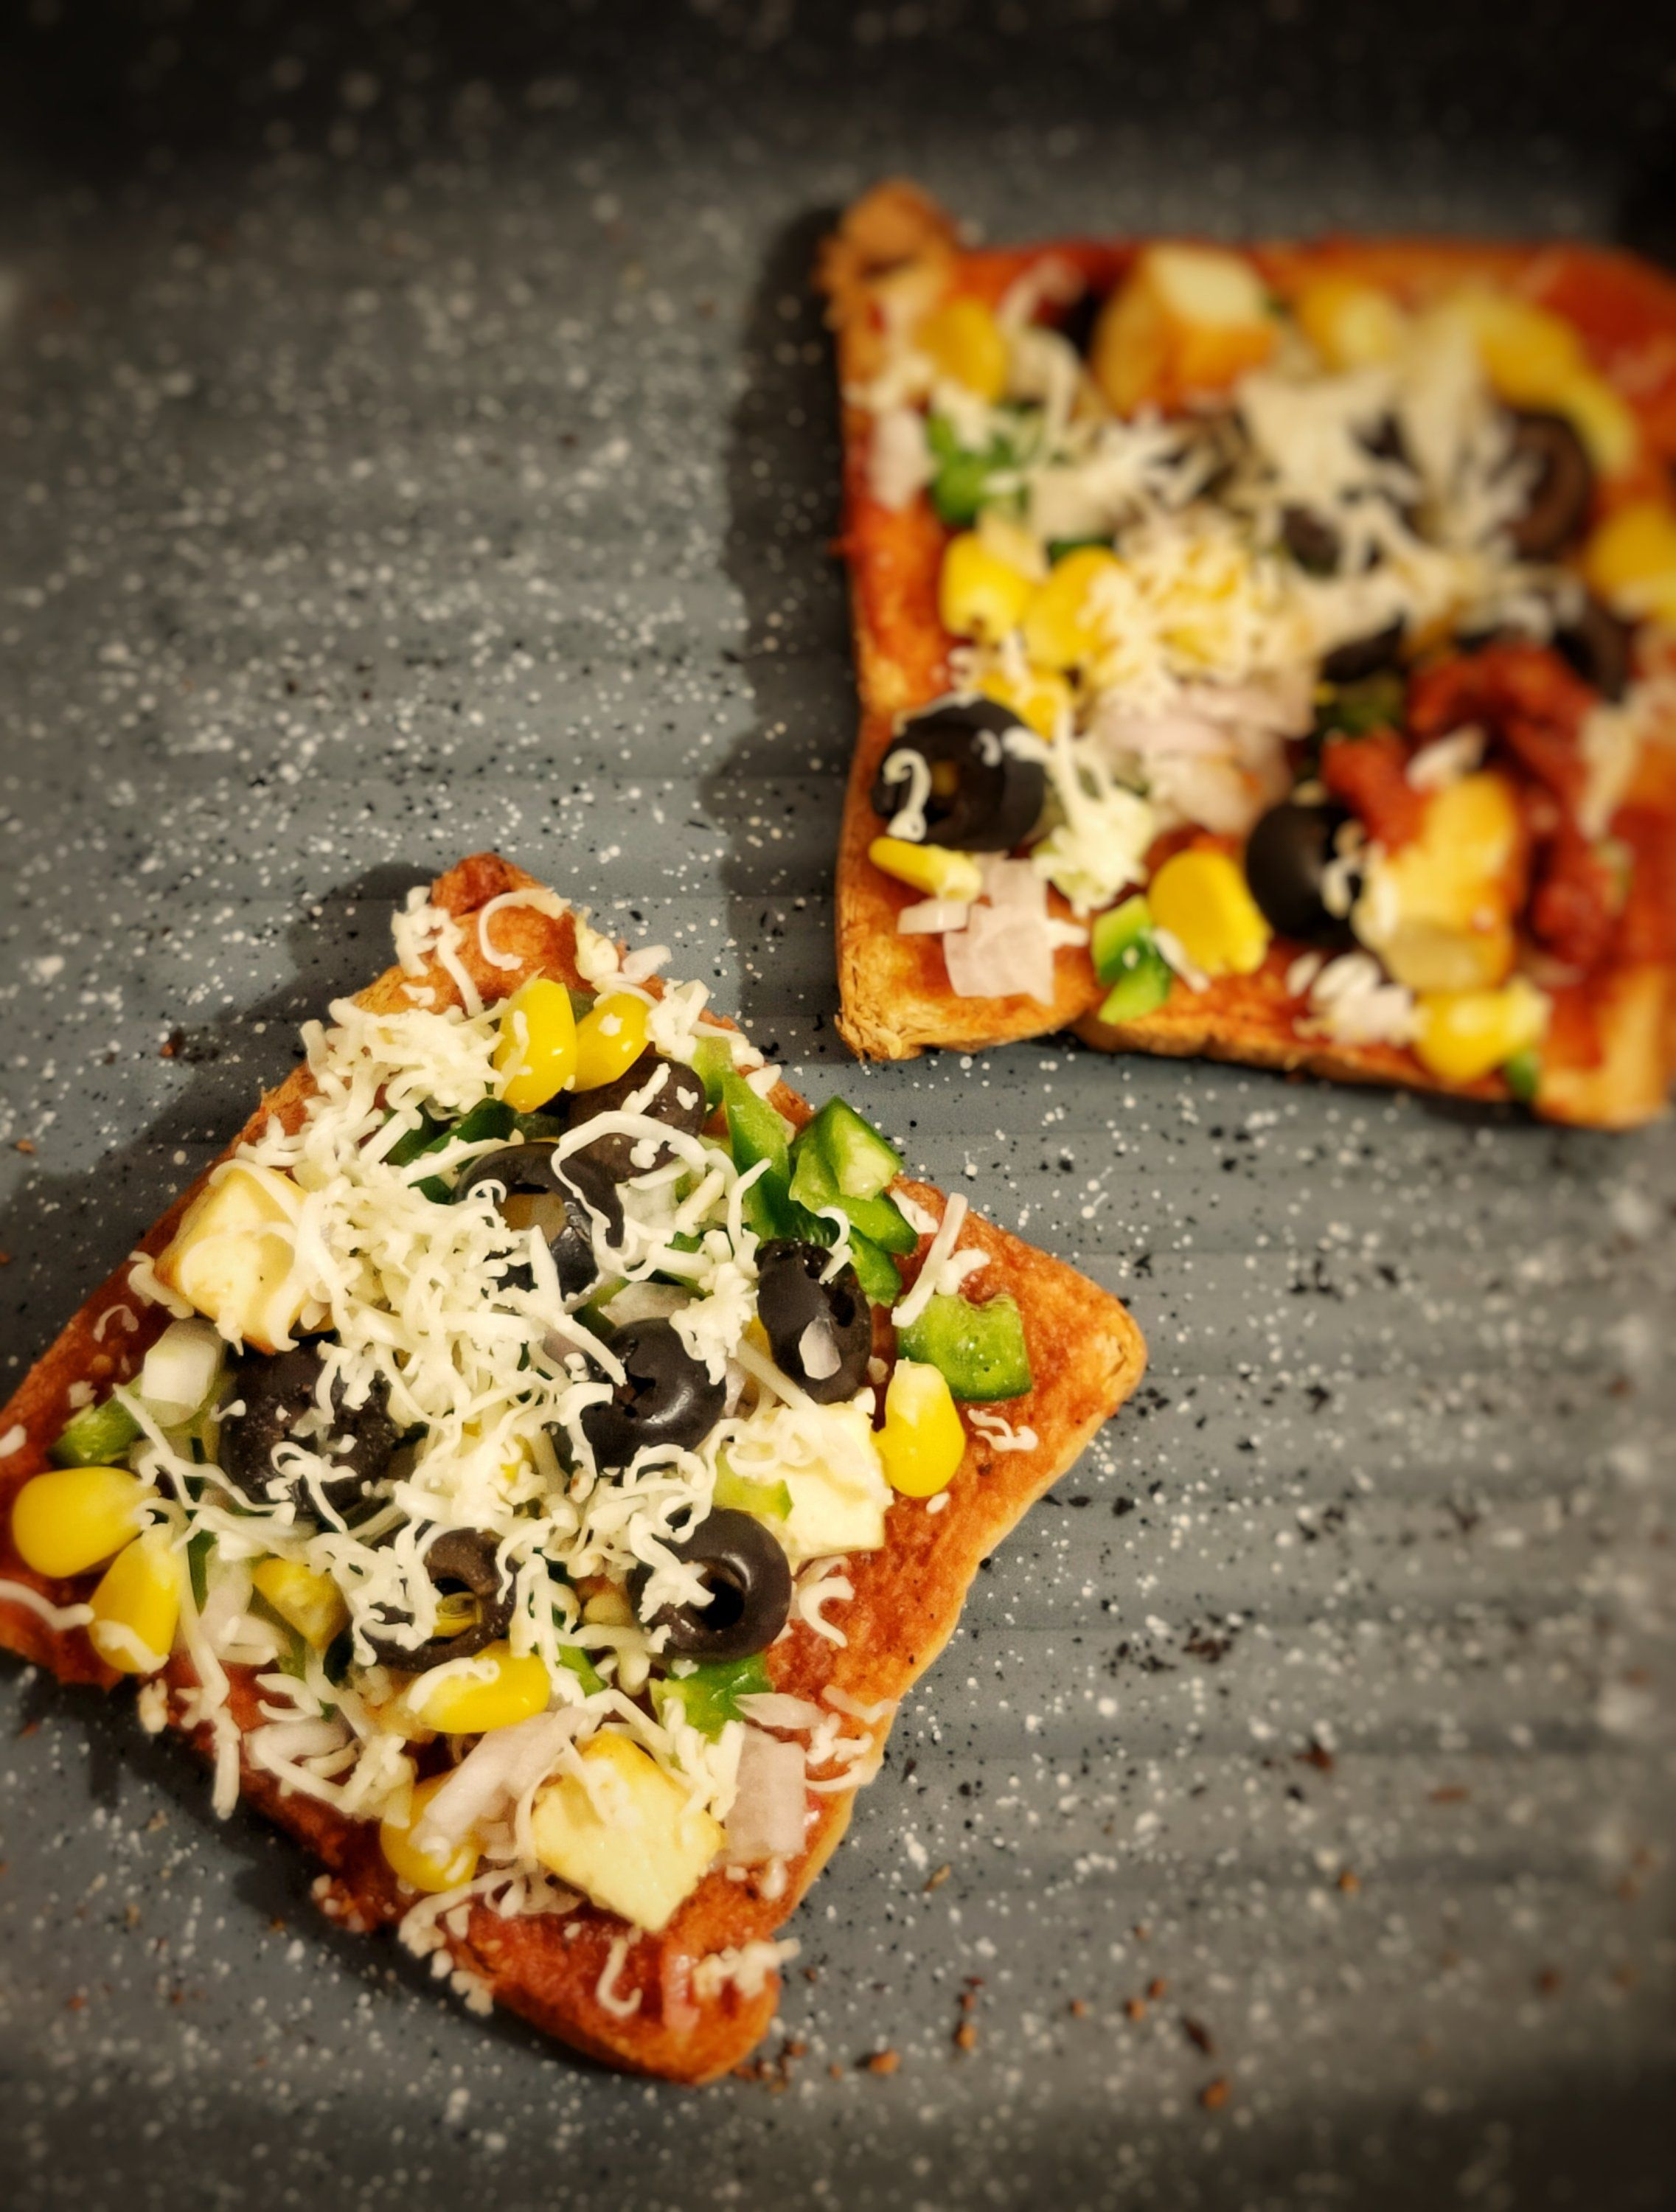 Bread Pizza Hebbar S Kitchen - Search your favorite Image